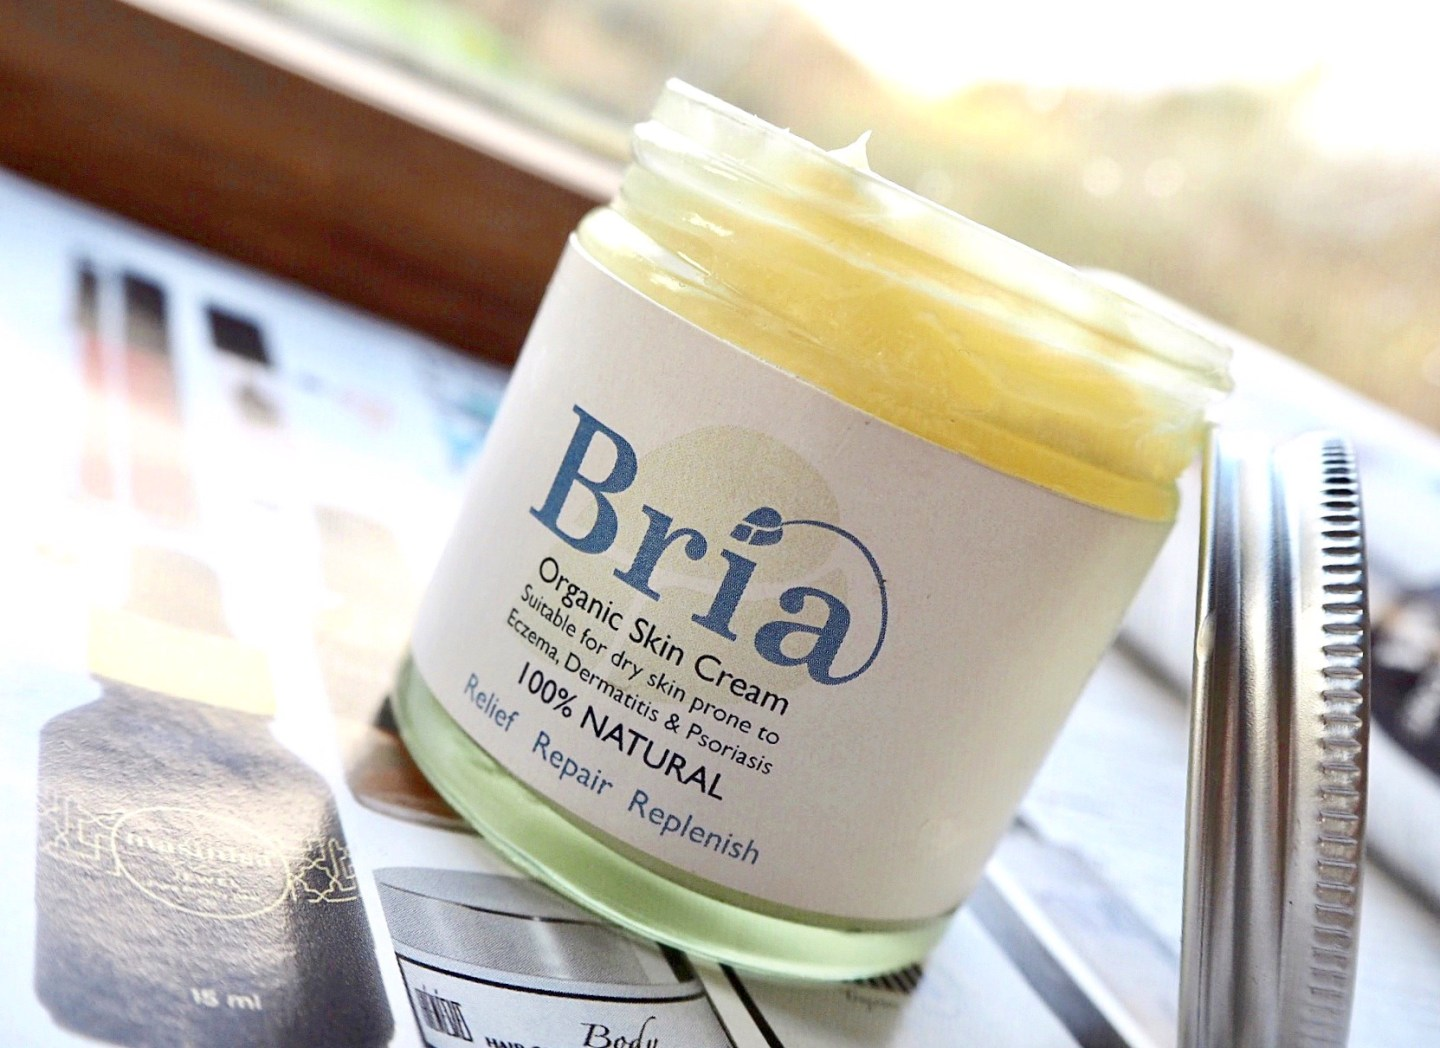 Bria organic cream. Ethical beauty.